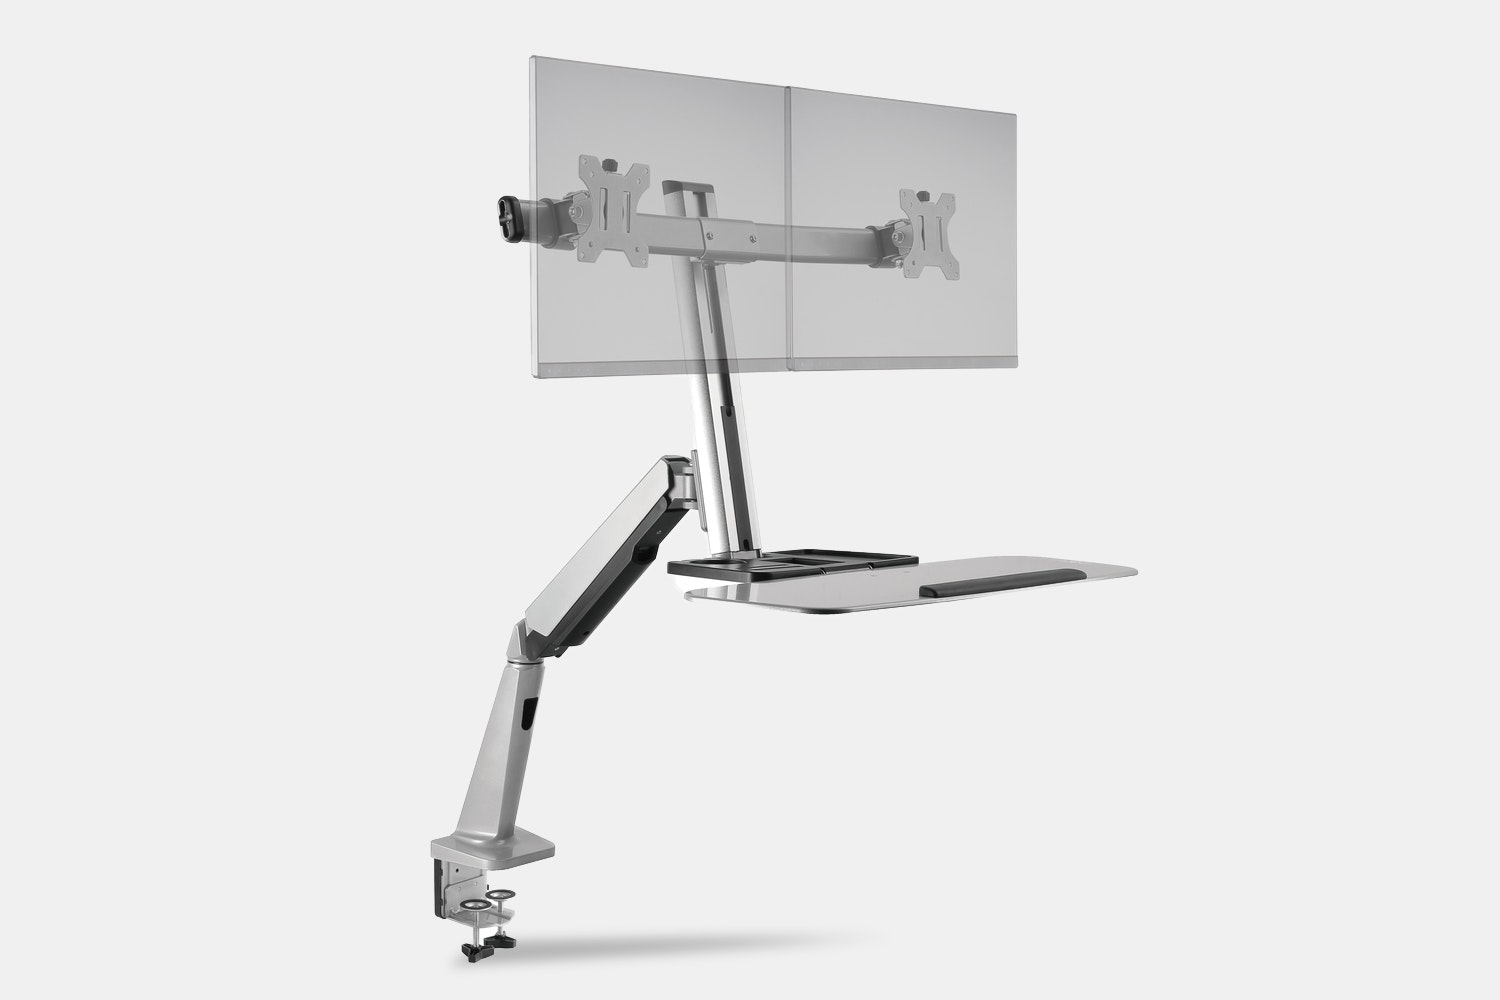 Clamp Mount – Dual Monitor (+ $20)